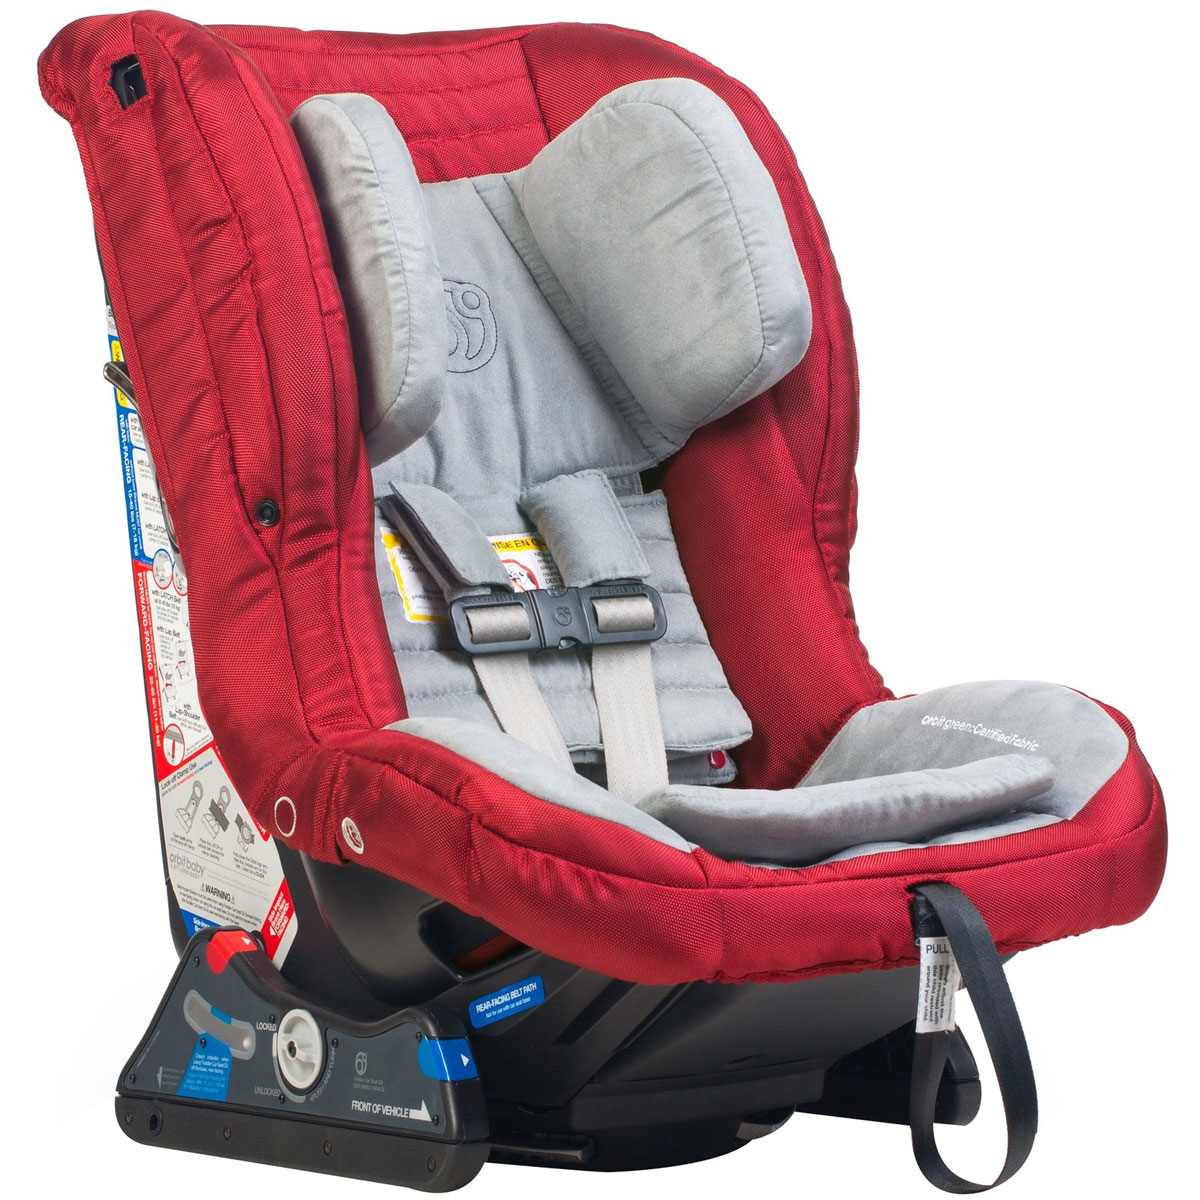 Convertible Car Seat Sale ITEM ORB827000R